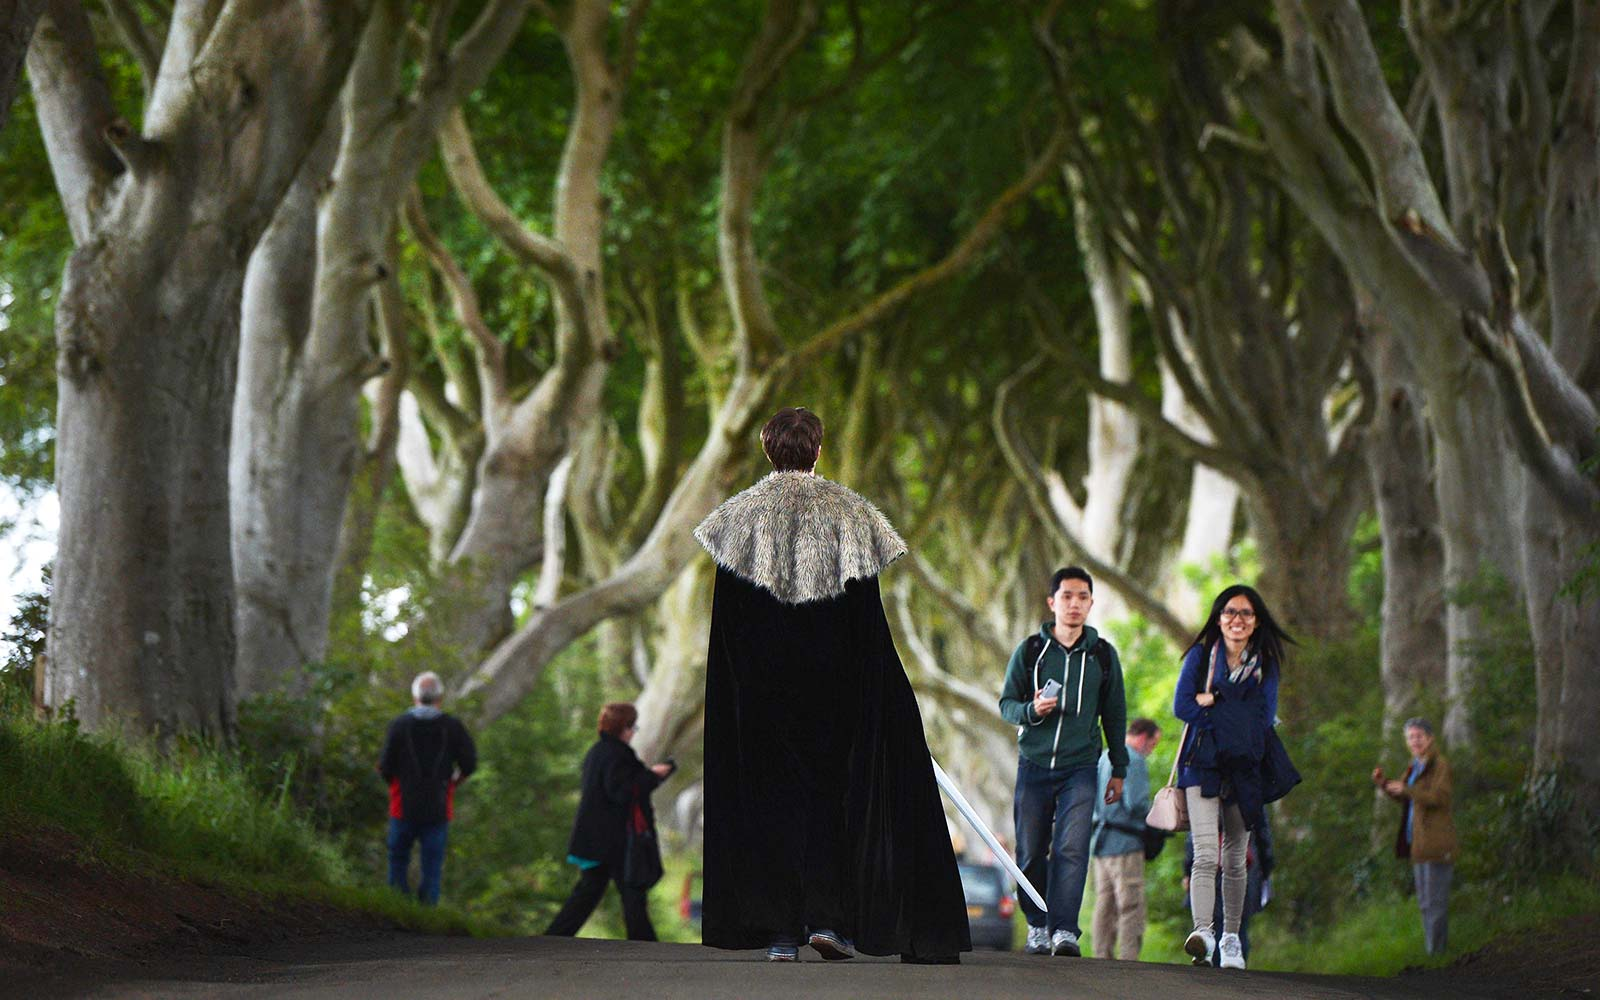 Game of Thrones tourists take photographs of one another as they visit a beech tree lined road known locally as The Dark Hedges in Belfast, Northern Ireland Winterfell Festival National Trust